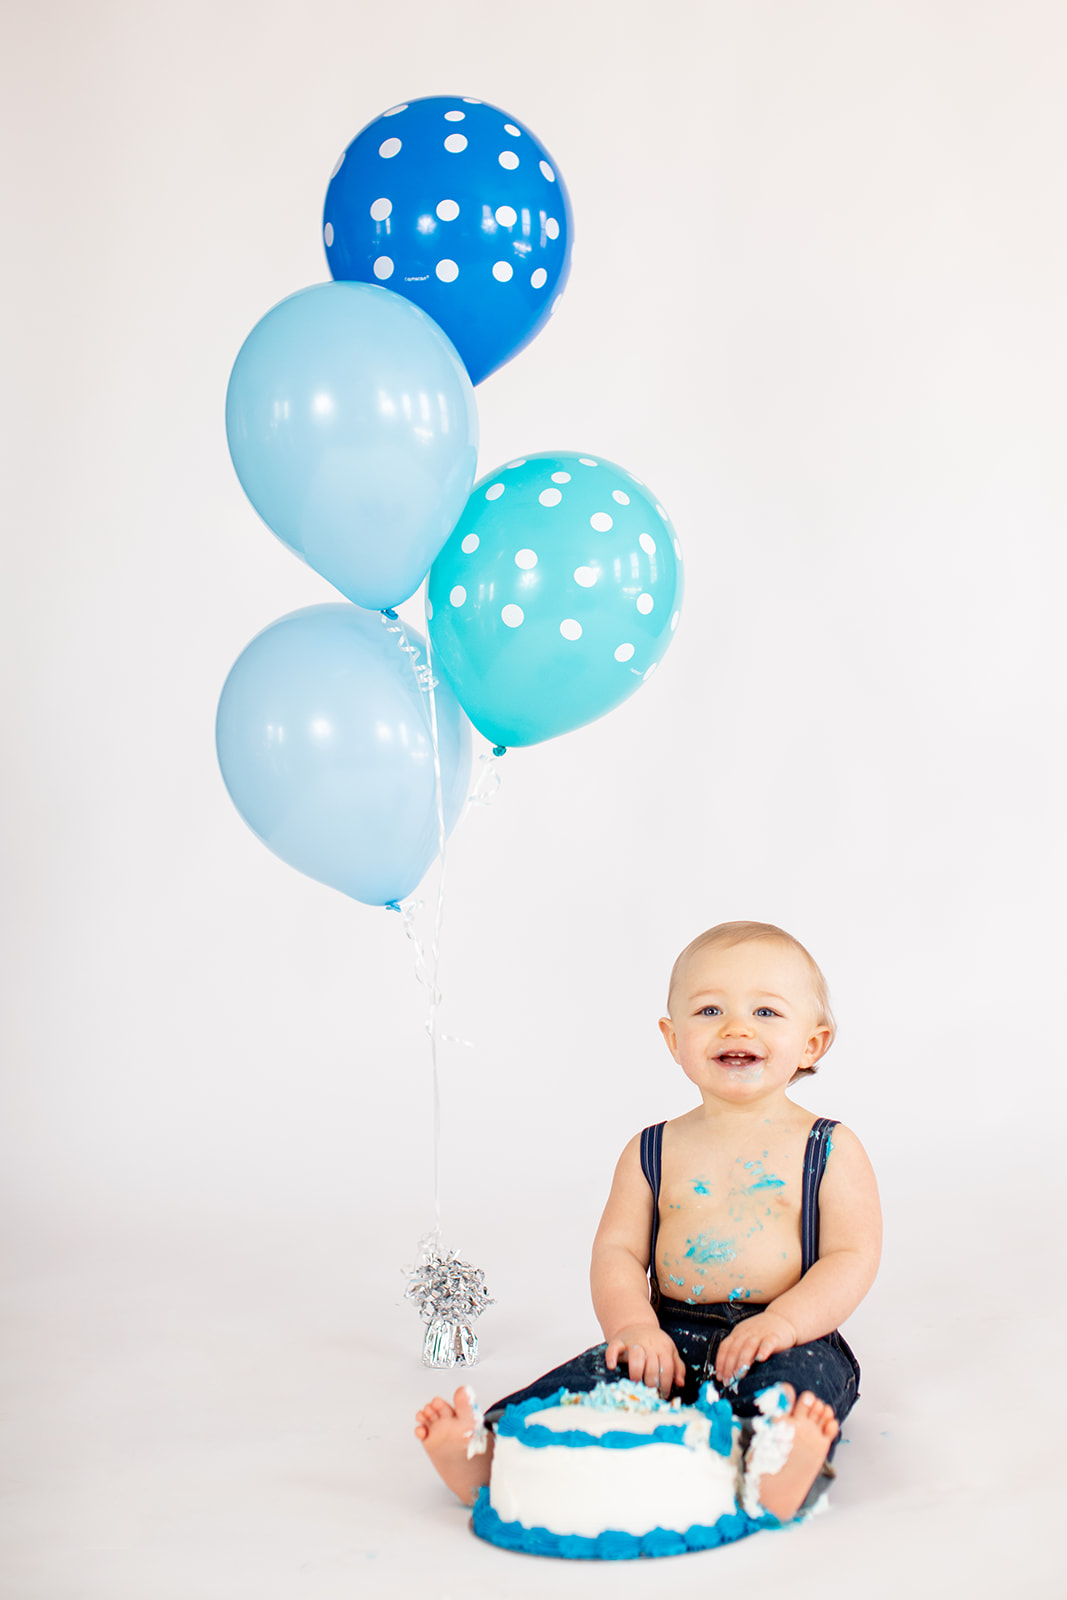 One Year Old Baby Boy Cake Smash  - Image Property of www.j-dphoto.com